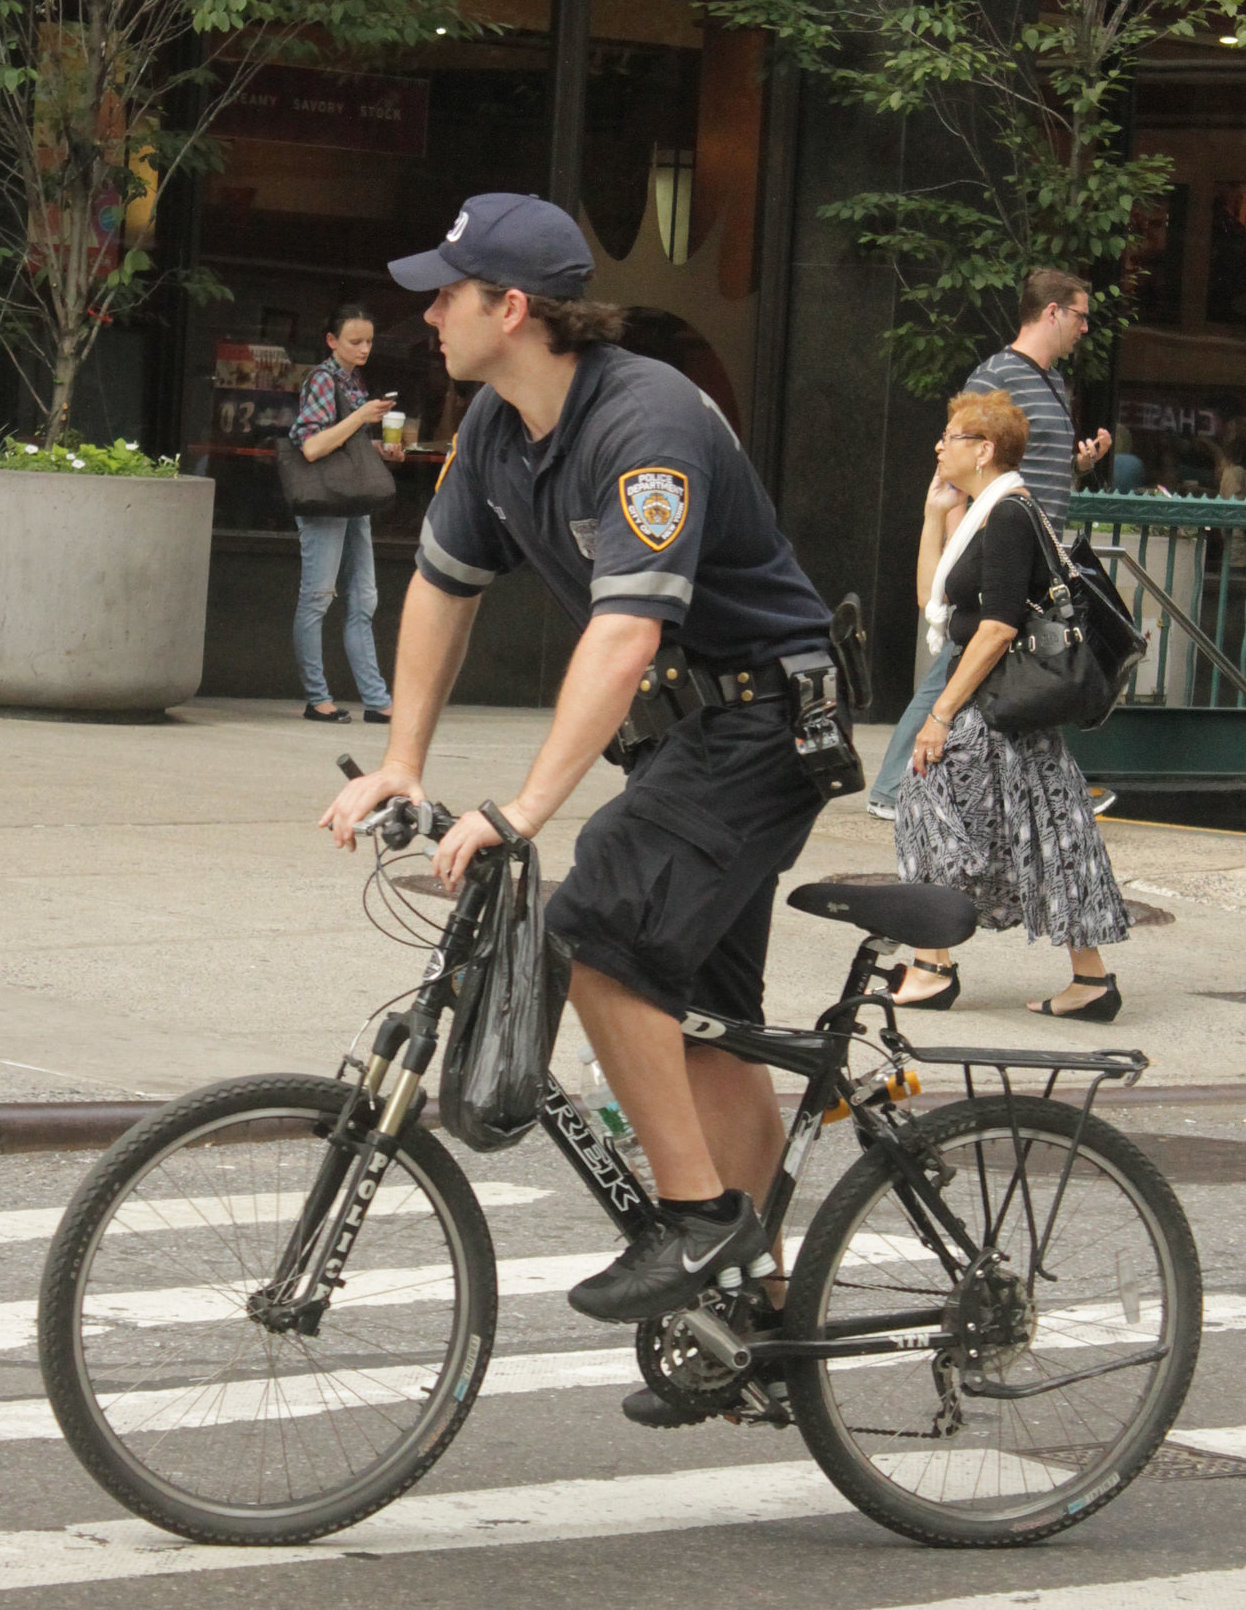 Nypd Recommended A Mandatory Helmet Law In 2011 Streetsblog New